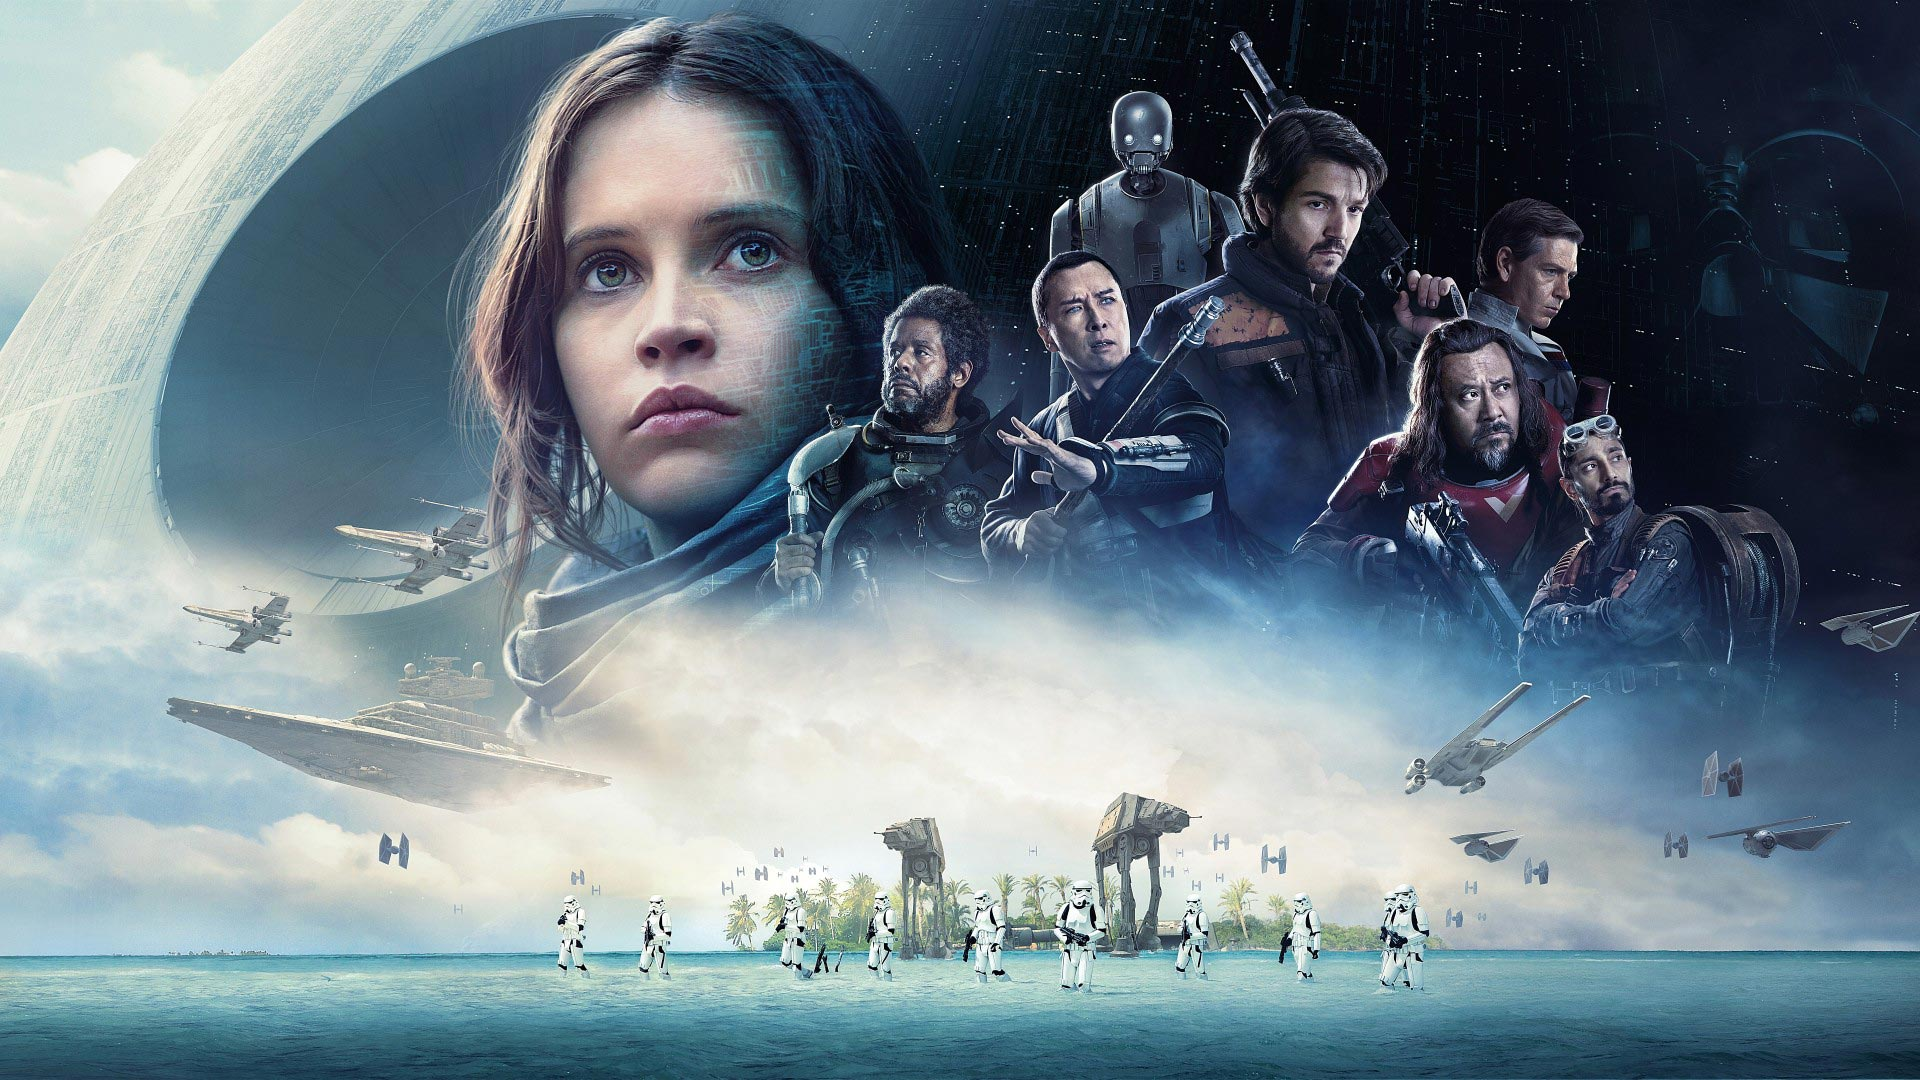 Star Wars: Rogue One Theme for Windows 10 | 8 | 7